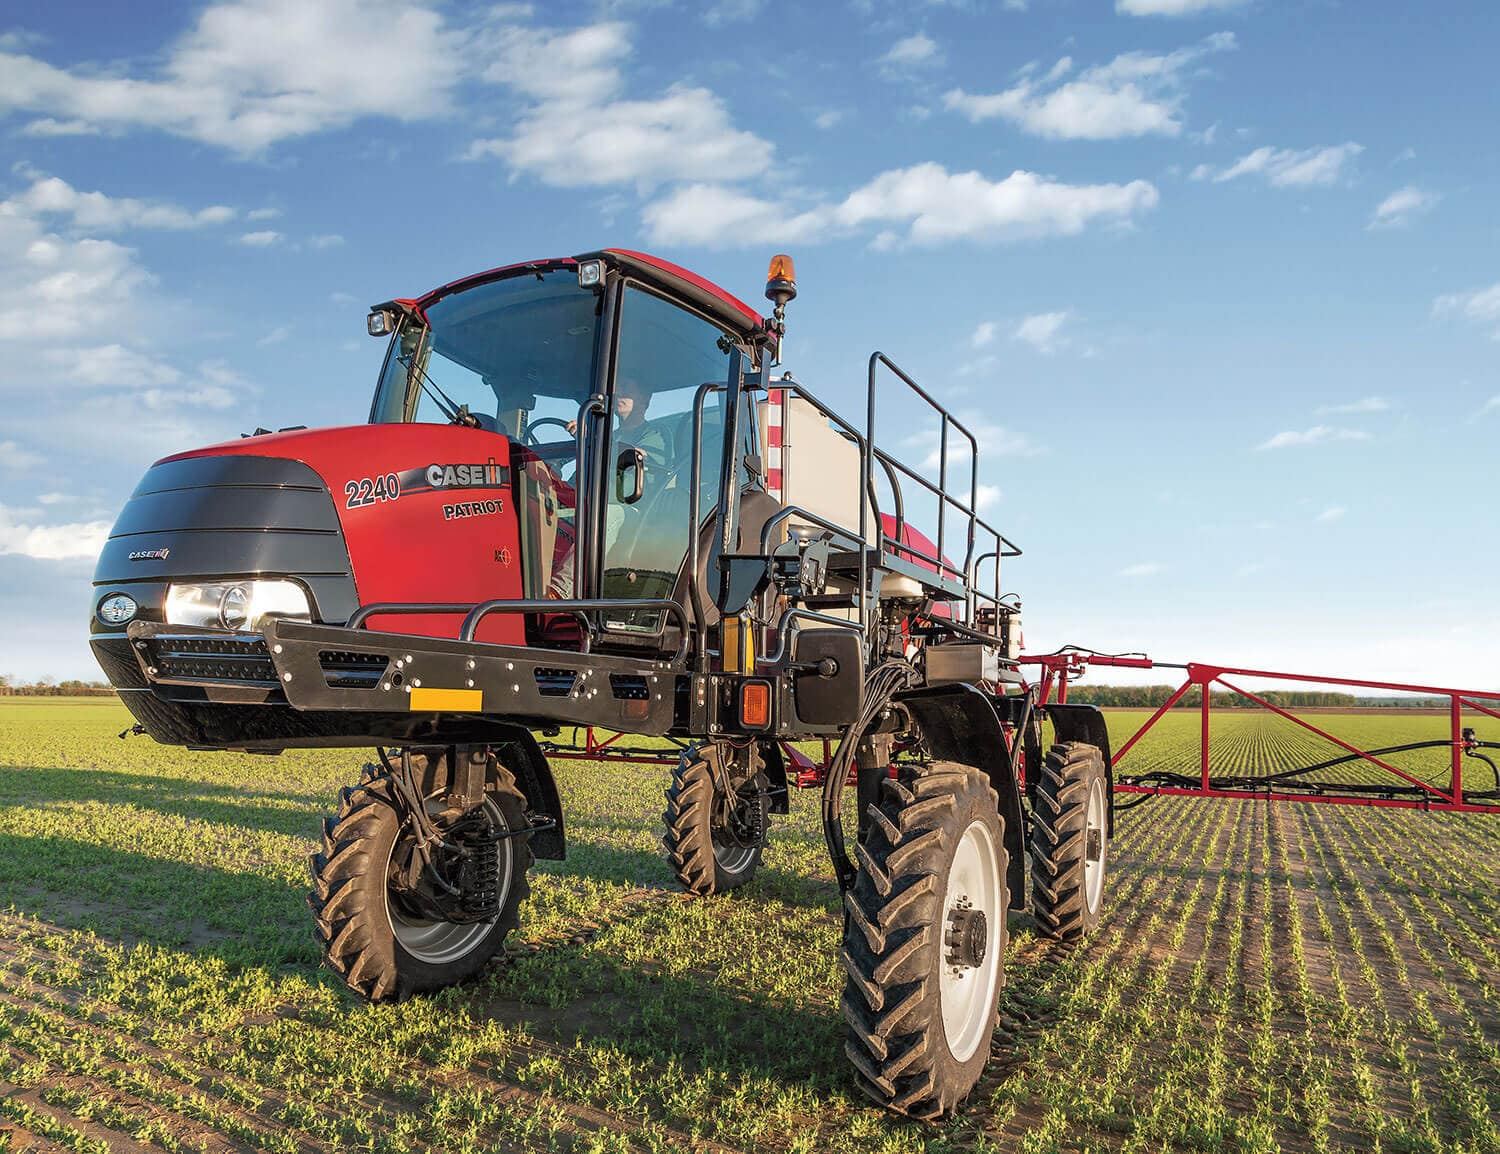 patriot features 03?width=500&height=300 patriot� series sprayers case ih  at edmiracle.co